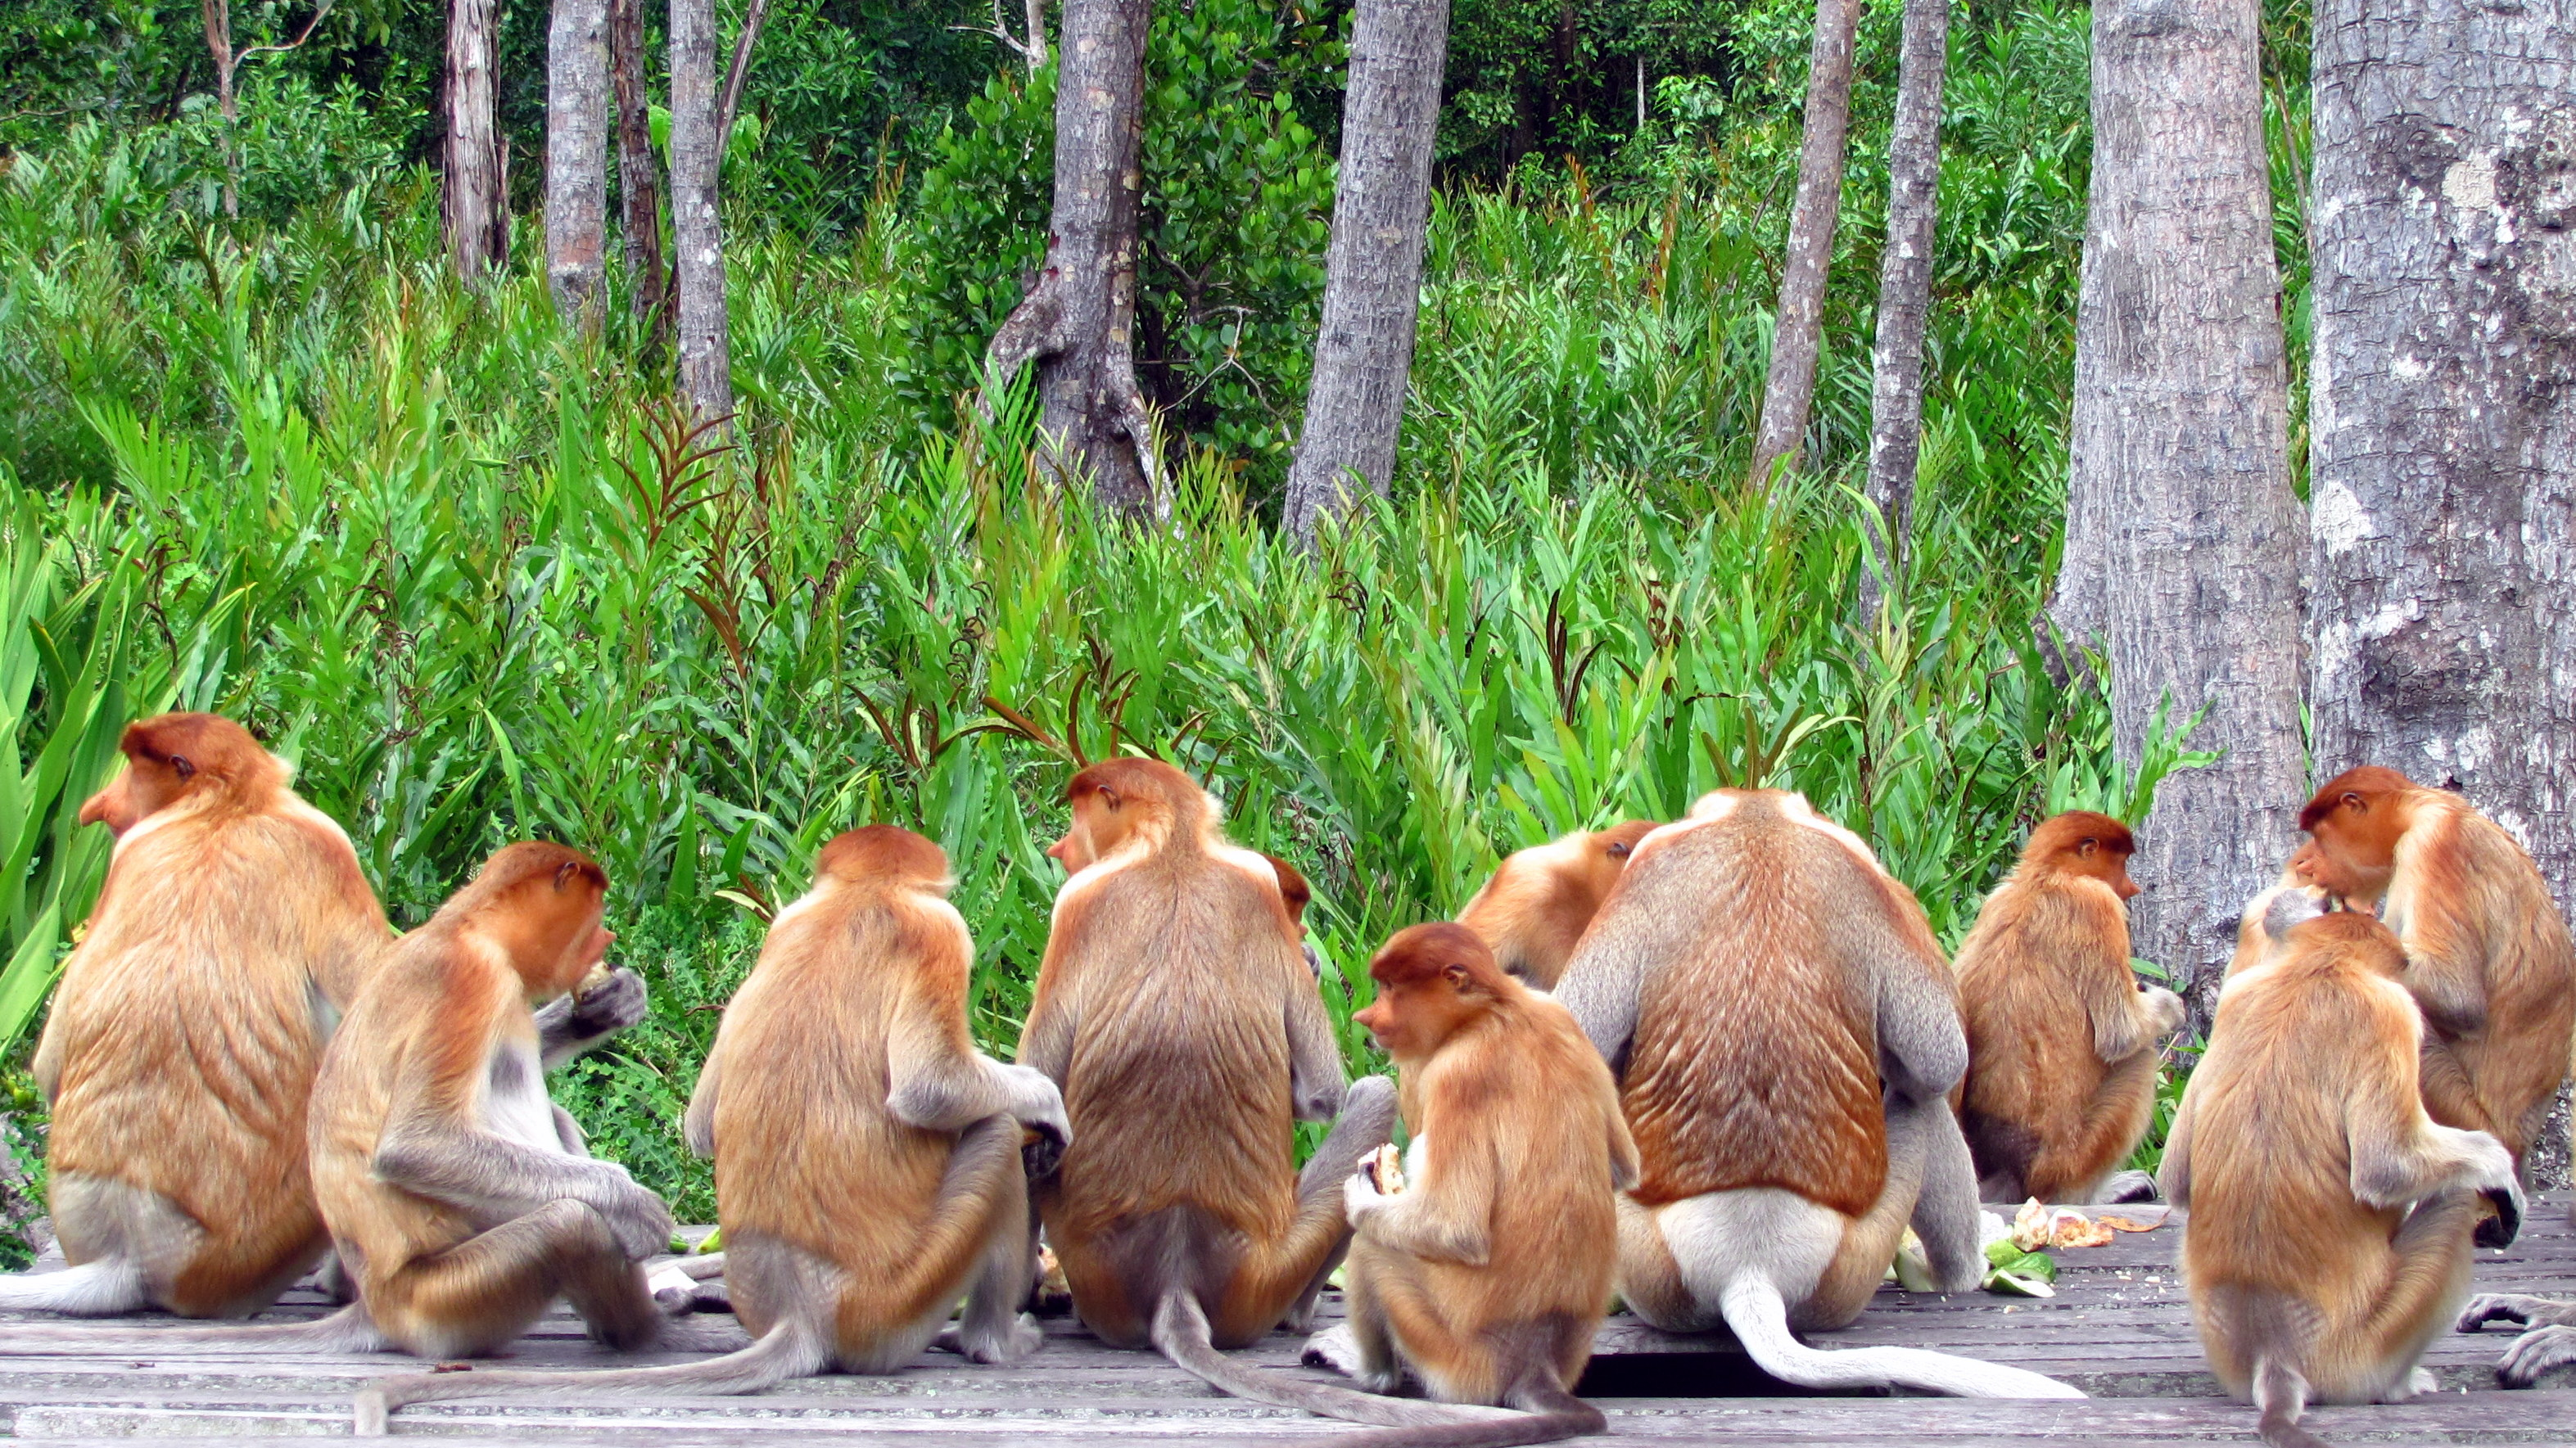 Proboscis monkeys in Labuk bay